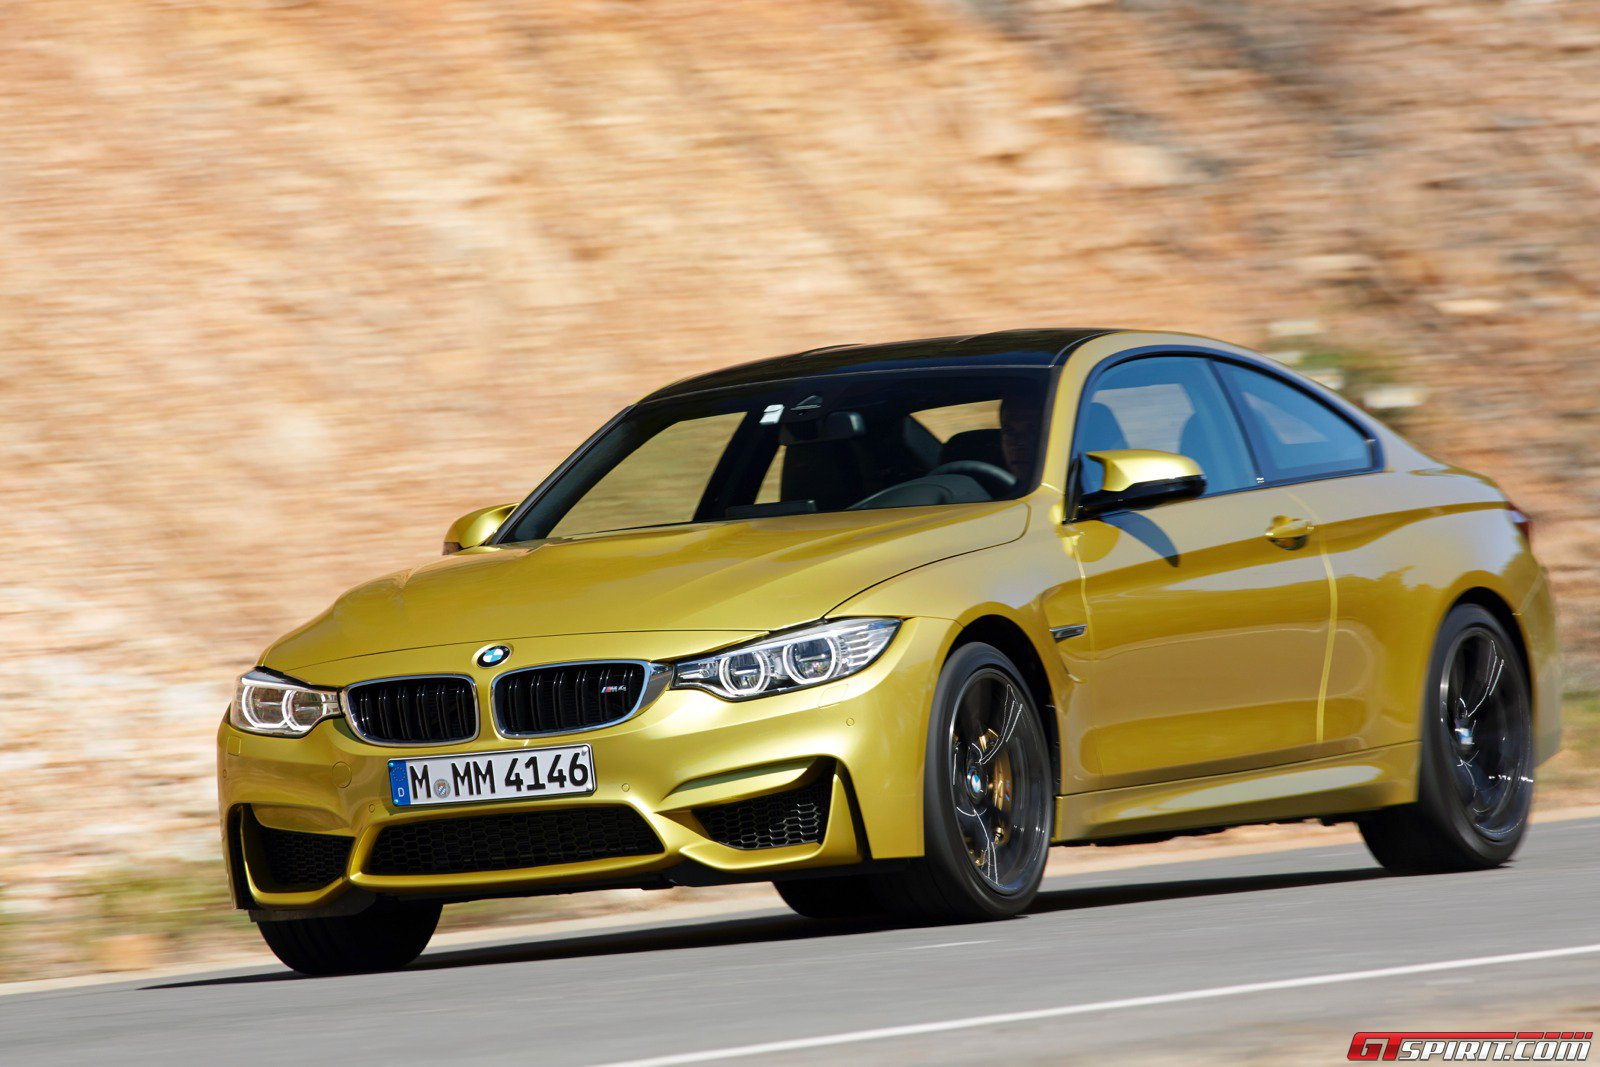 u k pricing revealed for 2014 bmw m3 and m4 coupe gtspirit. Black Bedroom Furniture Sets. Home Design Ideas